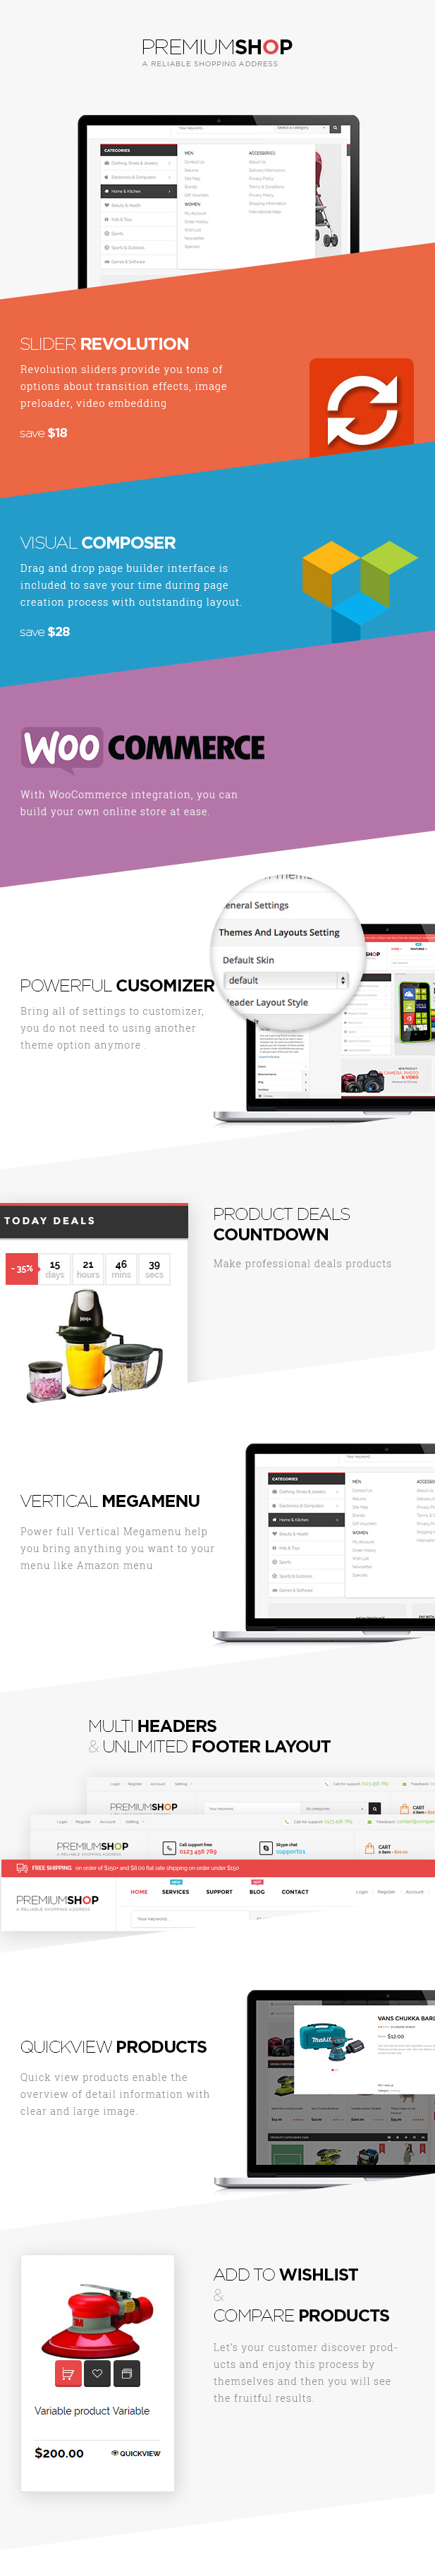 Woocommerce ecommerce theme wordpress